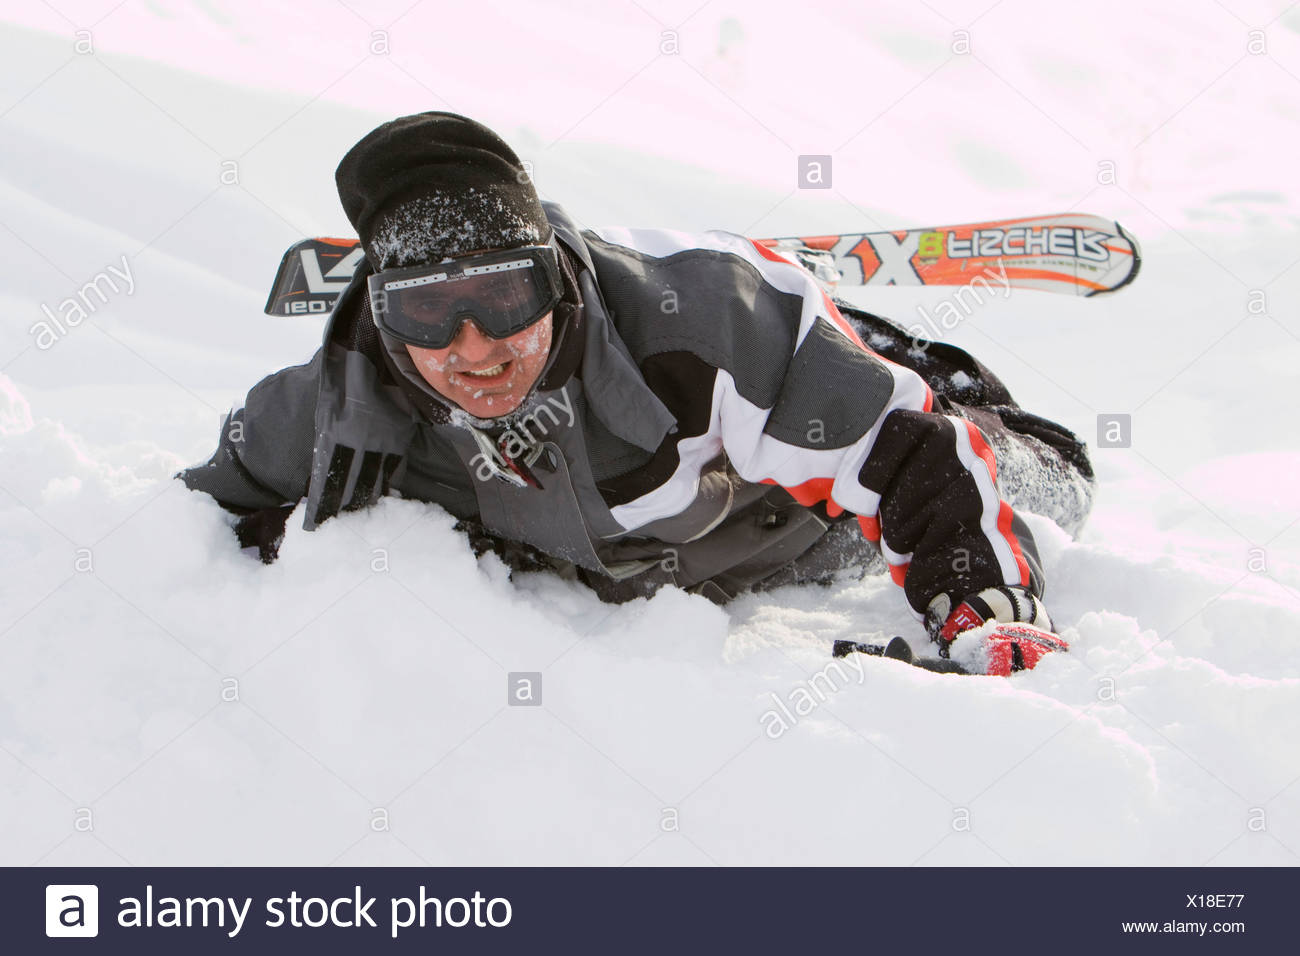 Skier, without a helmet, after a fall Stock Photo